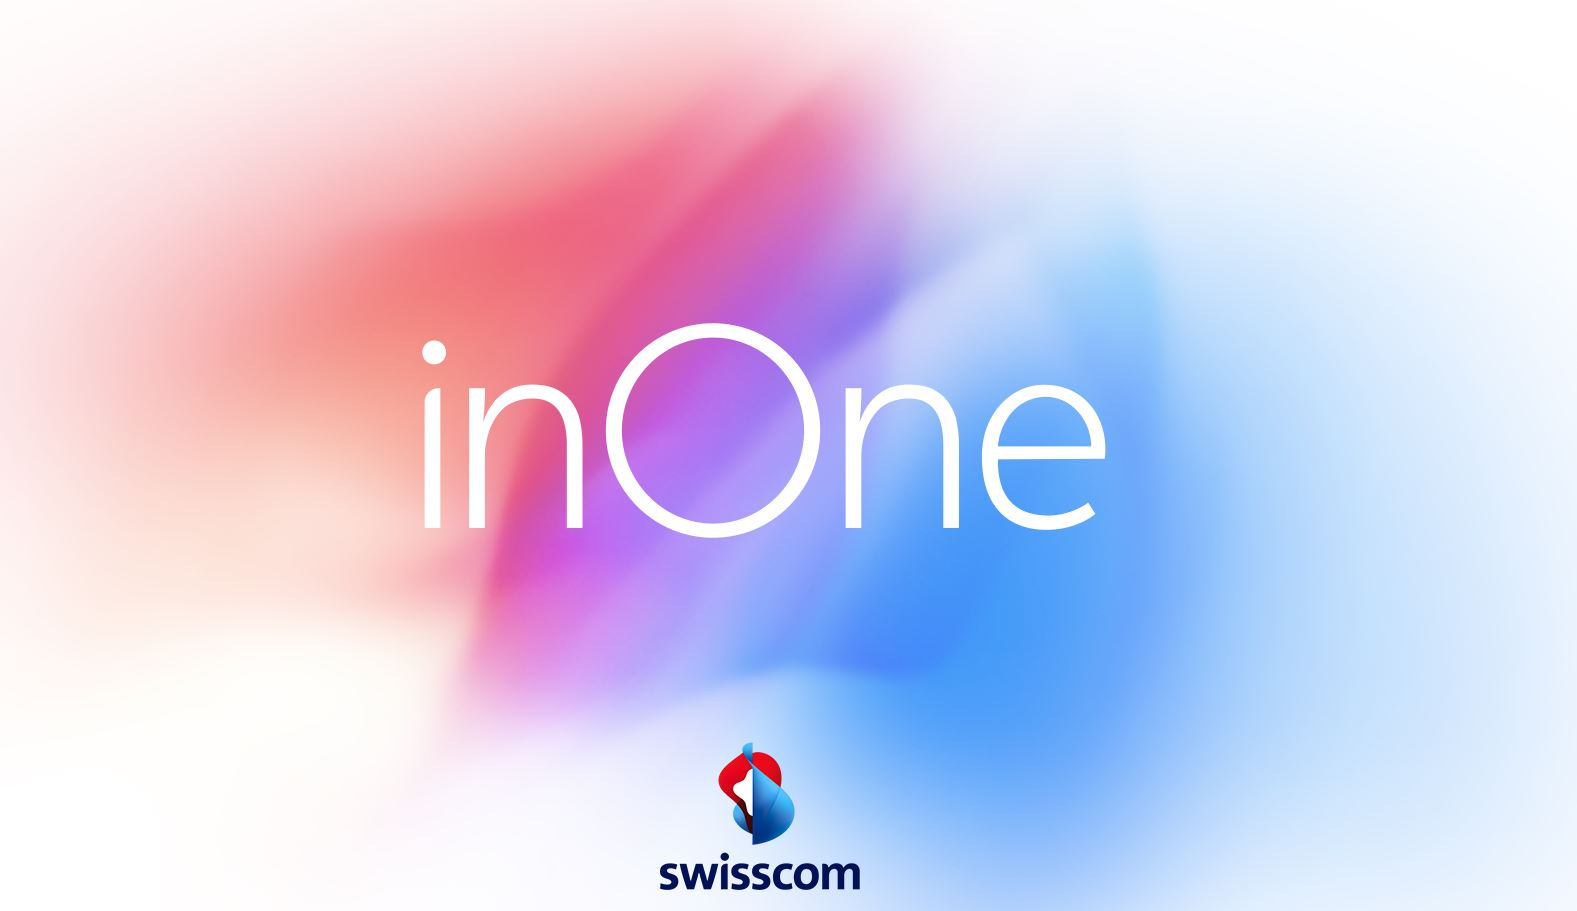 Swisscom lanciert All-in-One-Angebot Inone